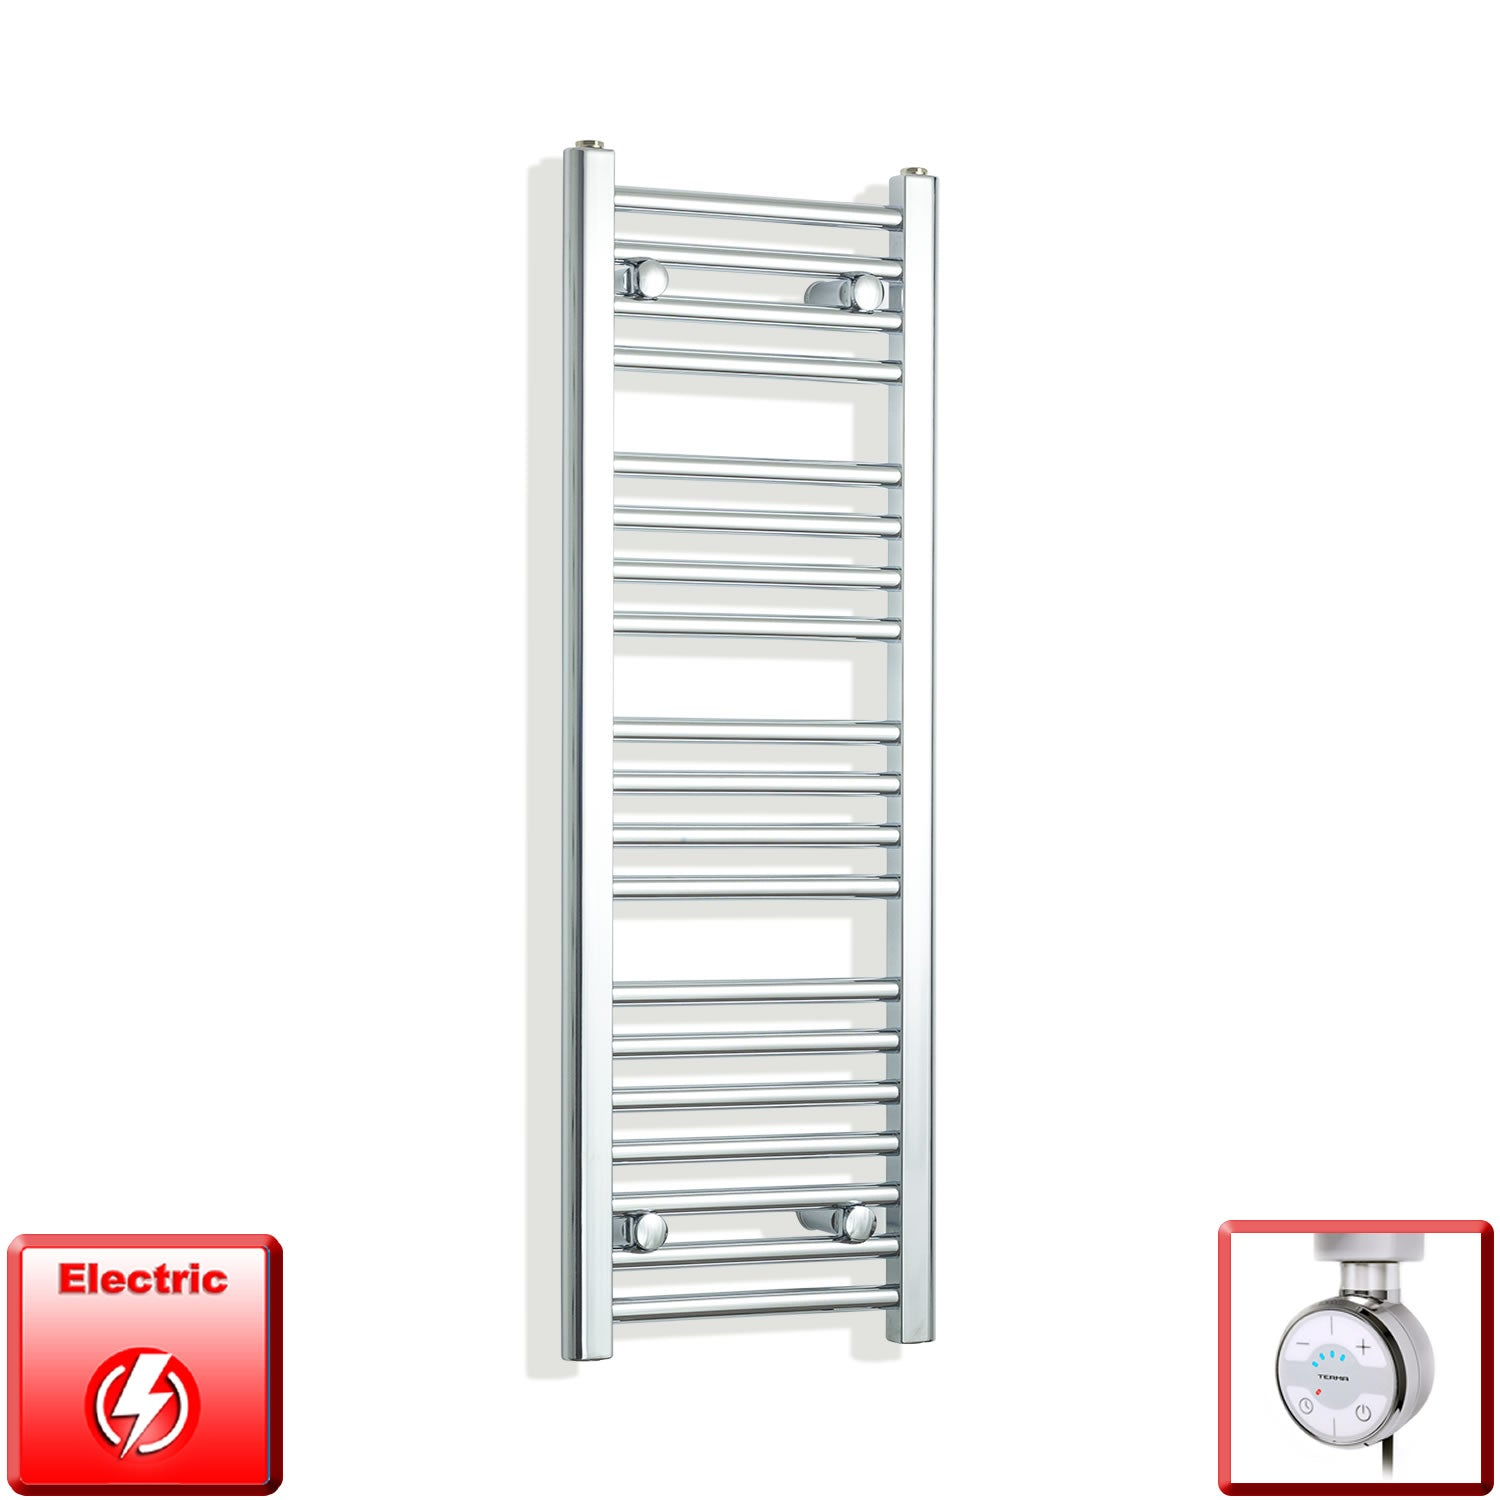 350mm Wide 1000mm High Flat Chrome Pre-Filled Electric Heated Towel Rail Radiator HTR,MOA Thermostatic Element